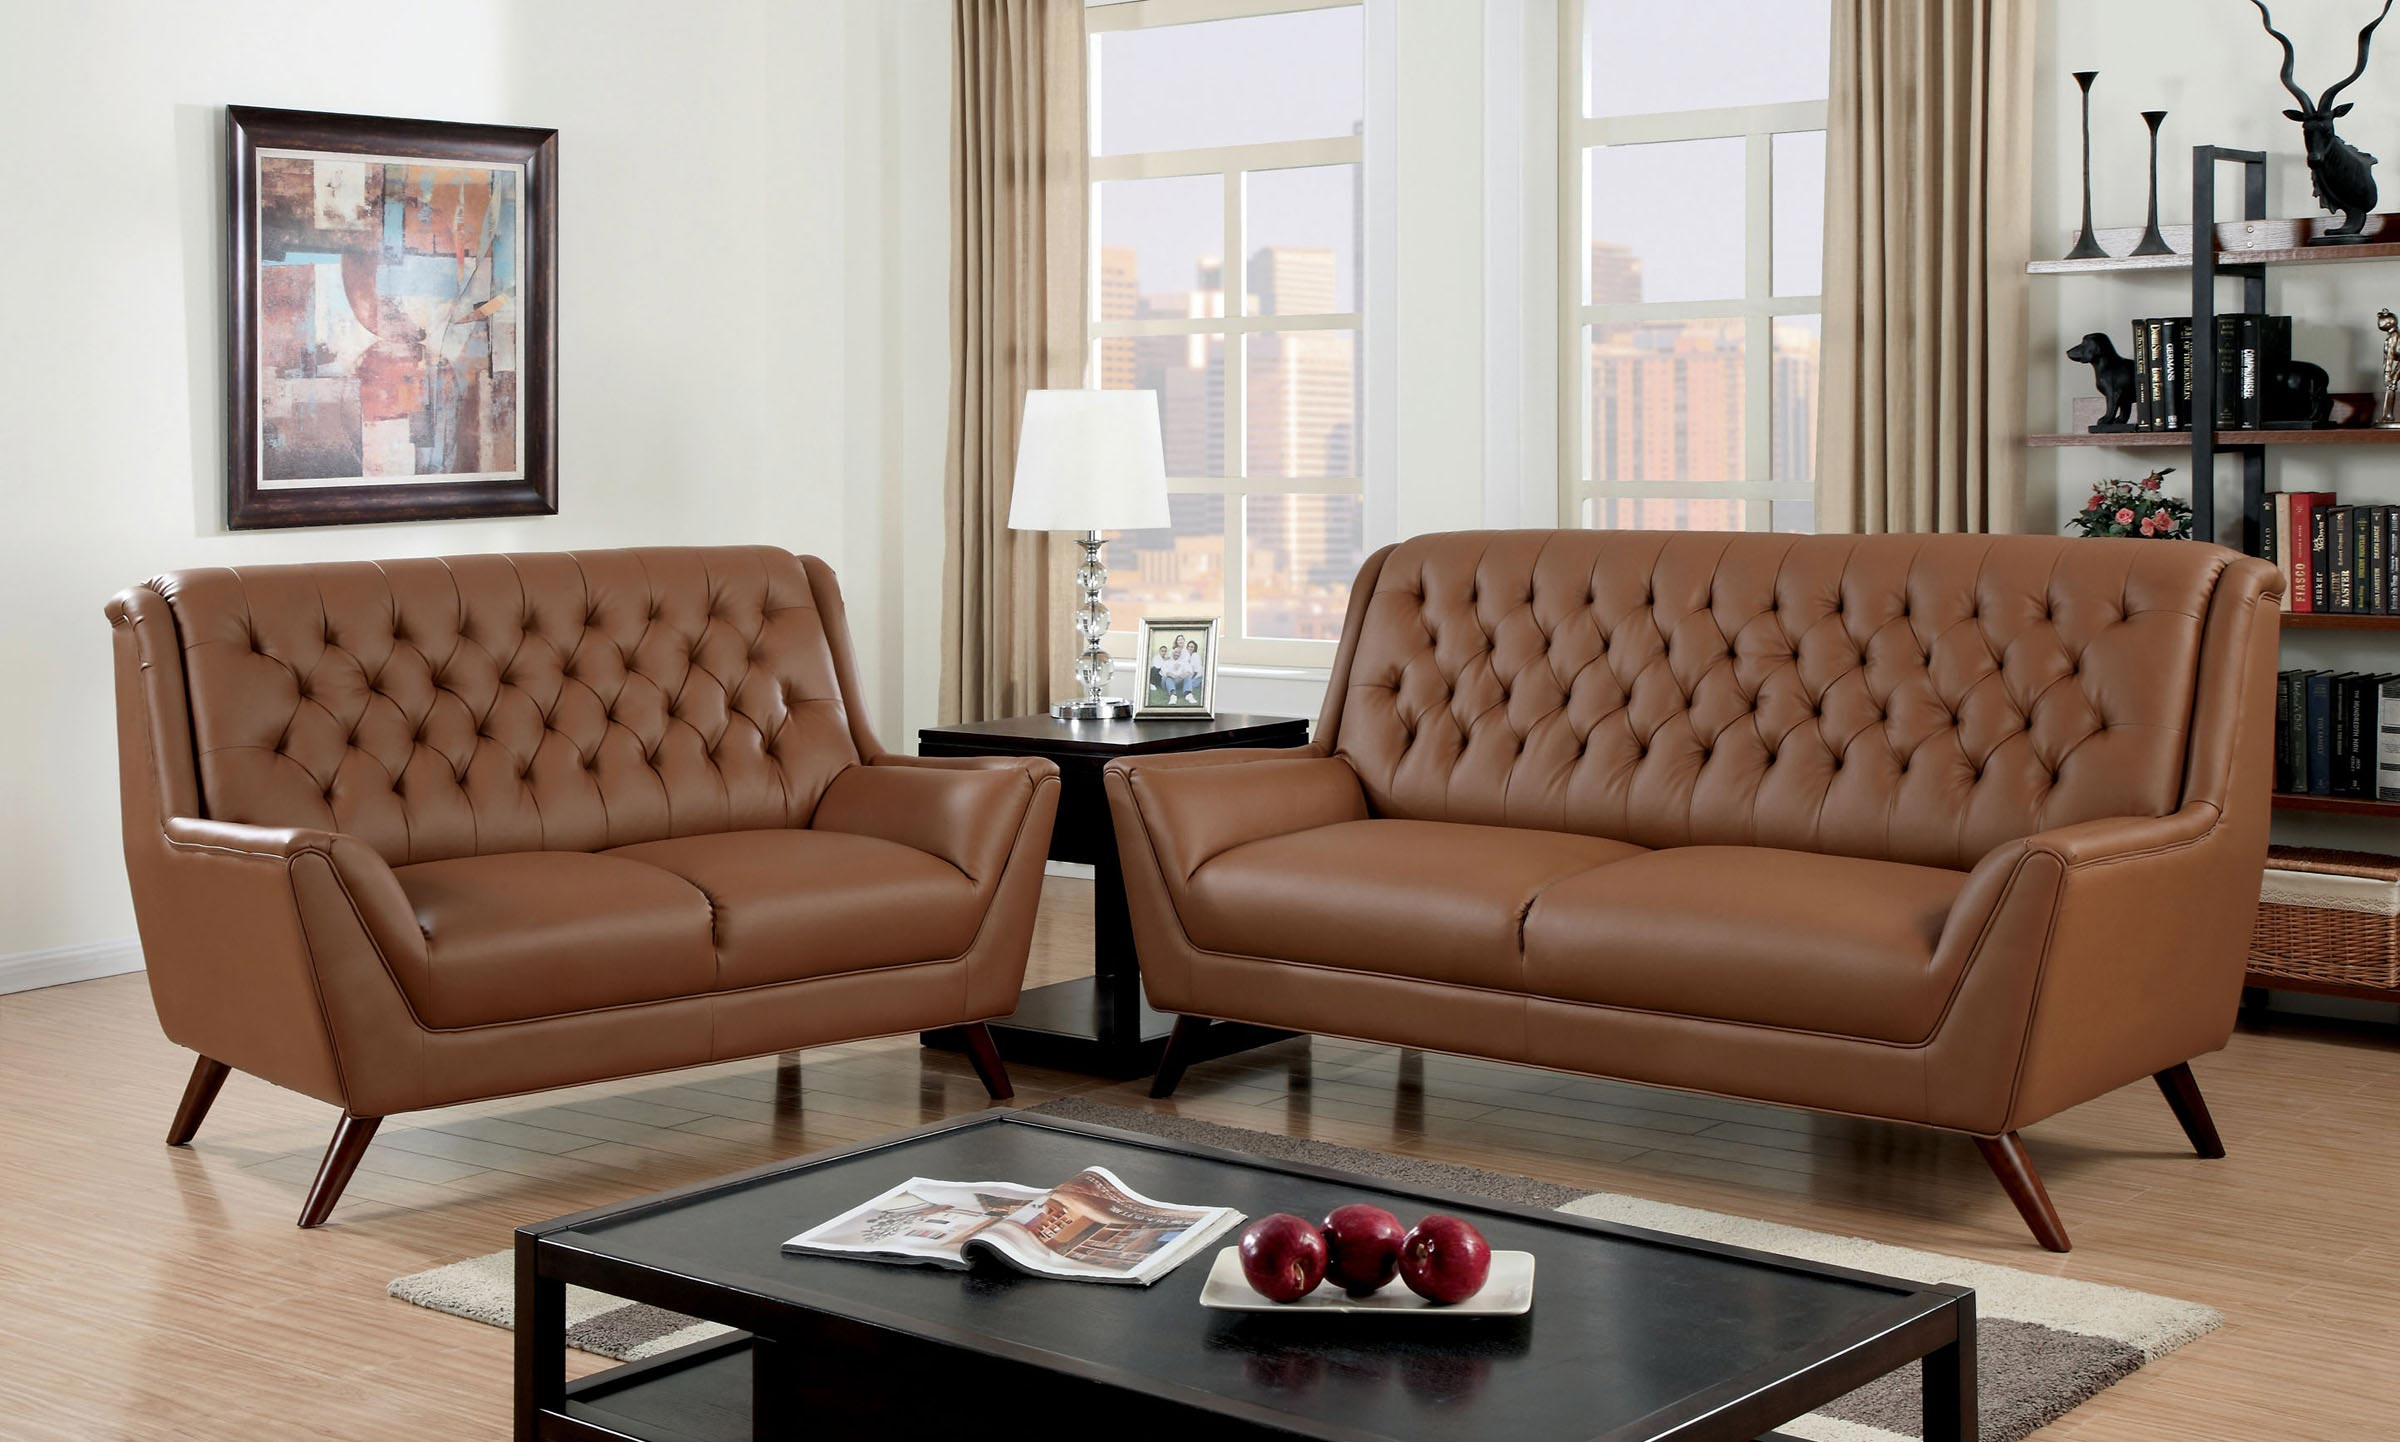 2 Pcs Brown Button Tufted Sofa Set